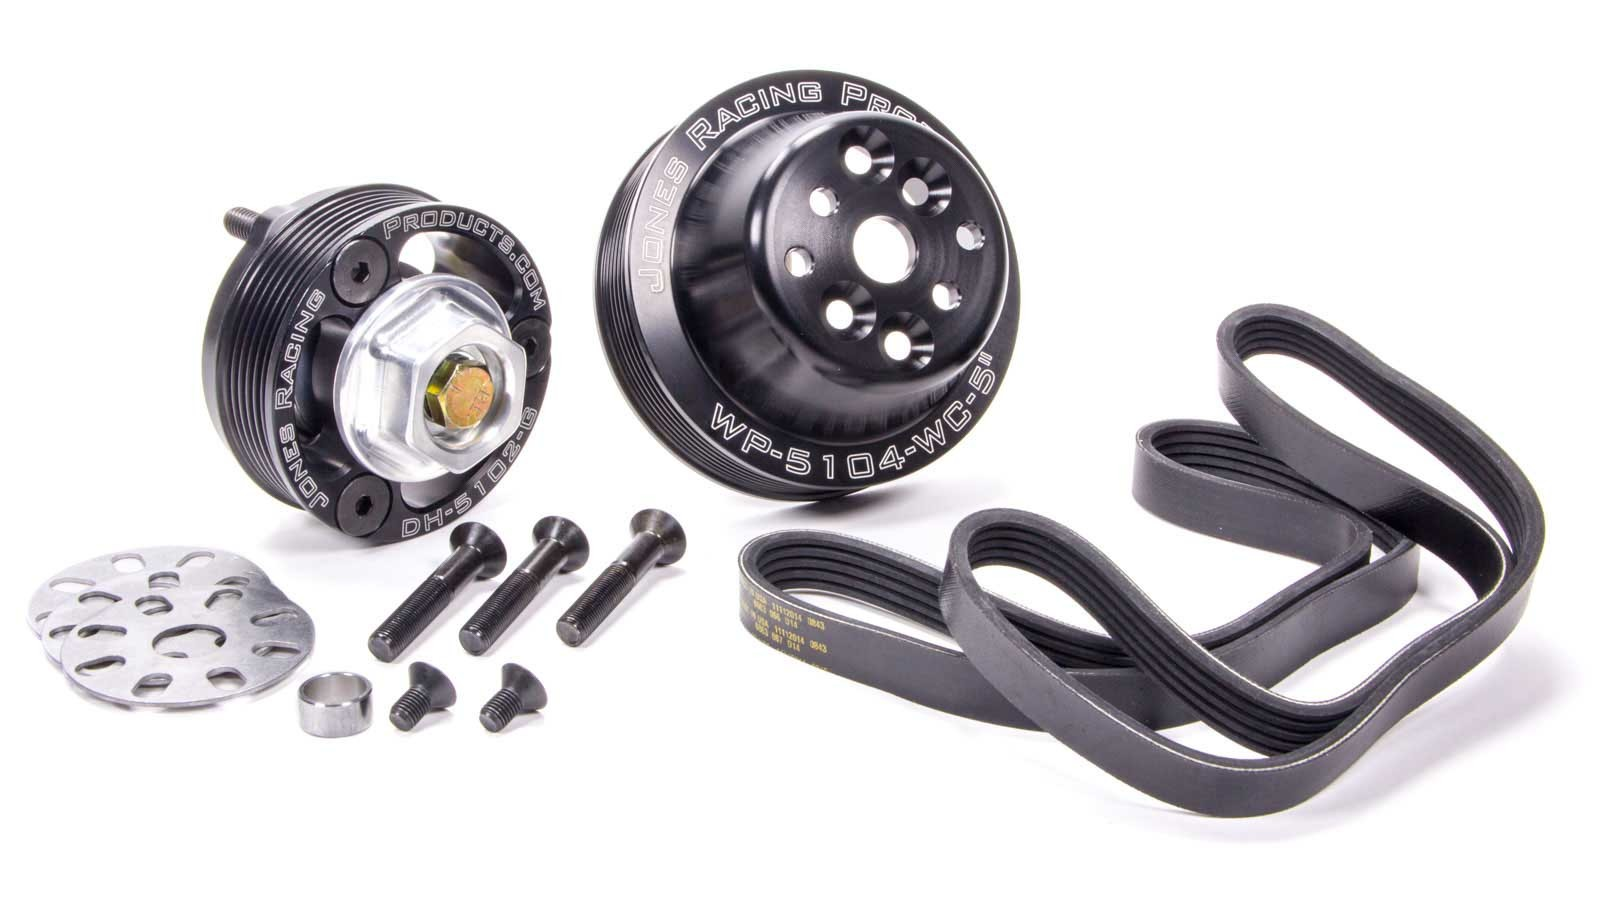 Jones Racing Products 1020-S Pulley Kit, 5 Rib Serpentine, Aluminum, Black Anodize, Chevy V8, Kit